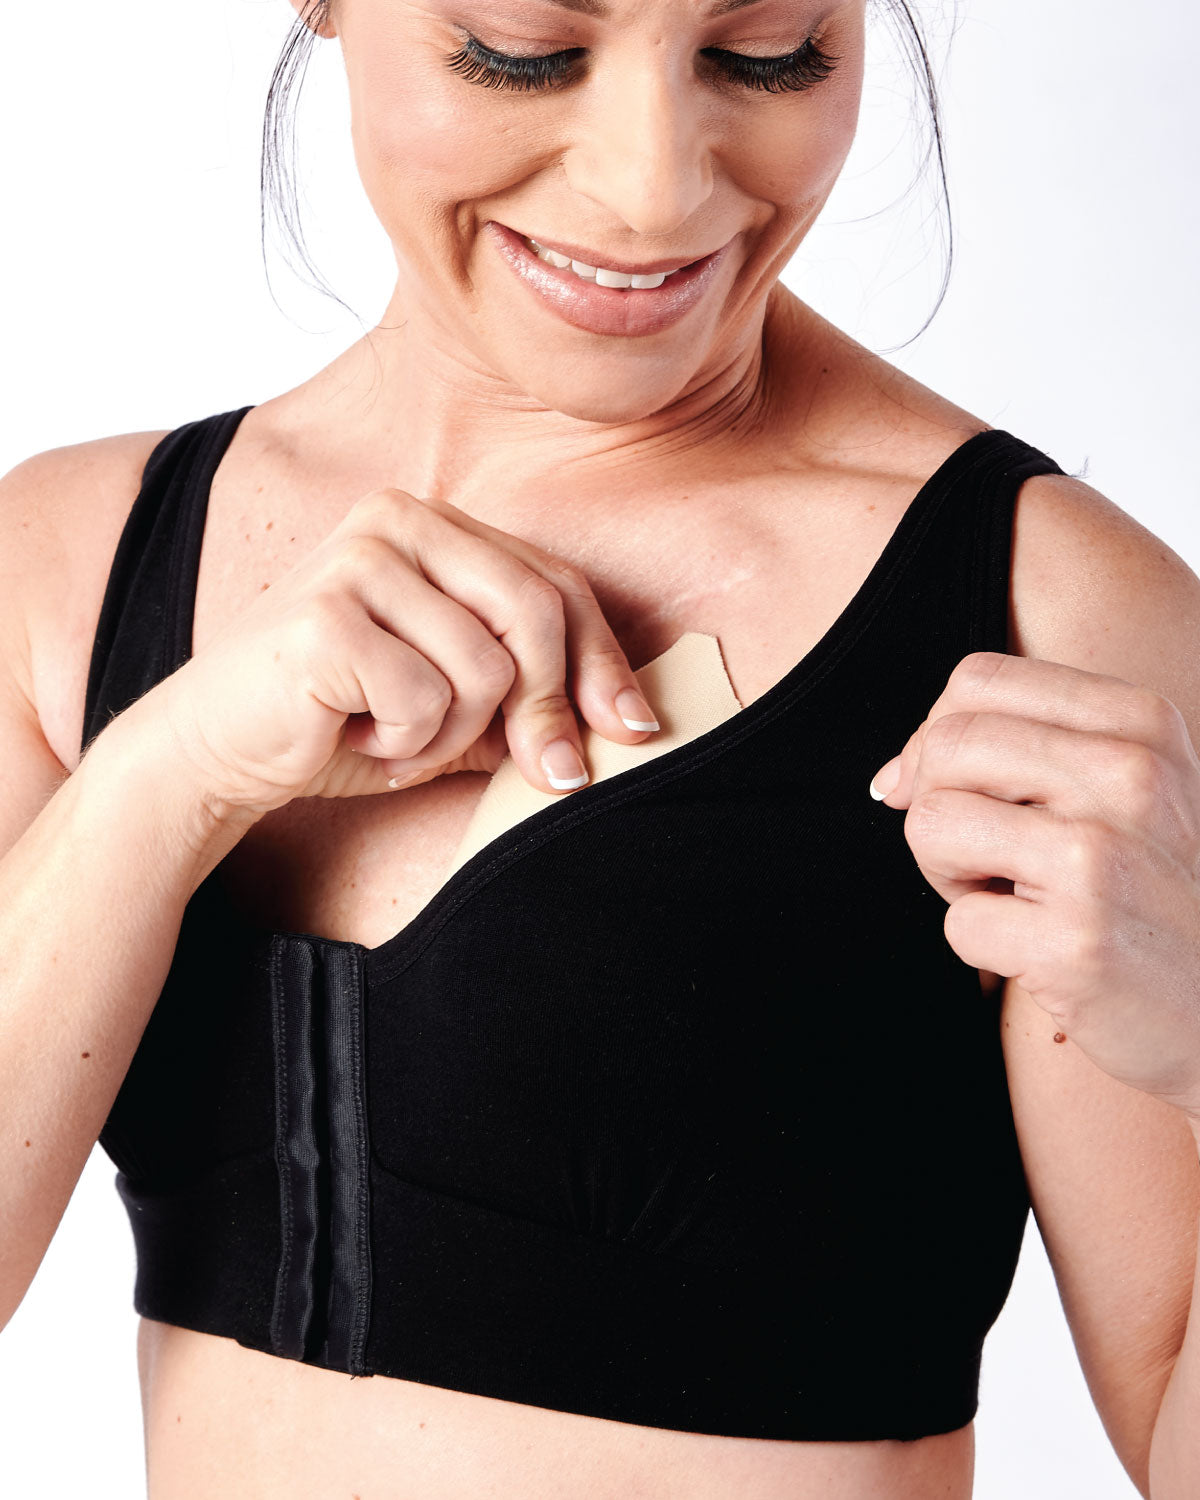 Black, pocketed front closure wireless bra with soft modal material and convertible & adjustable straps on mastectomy model.